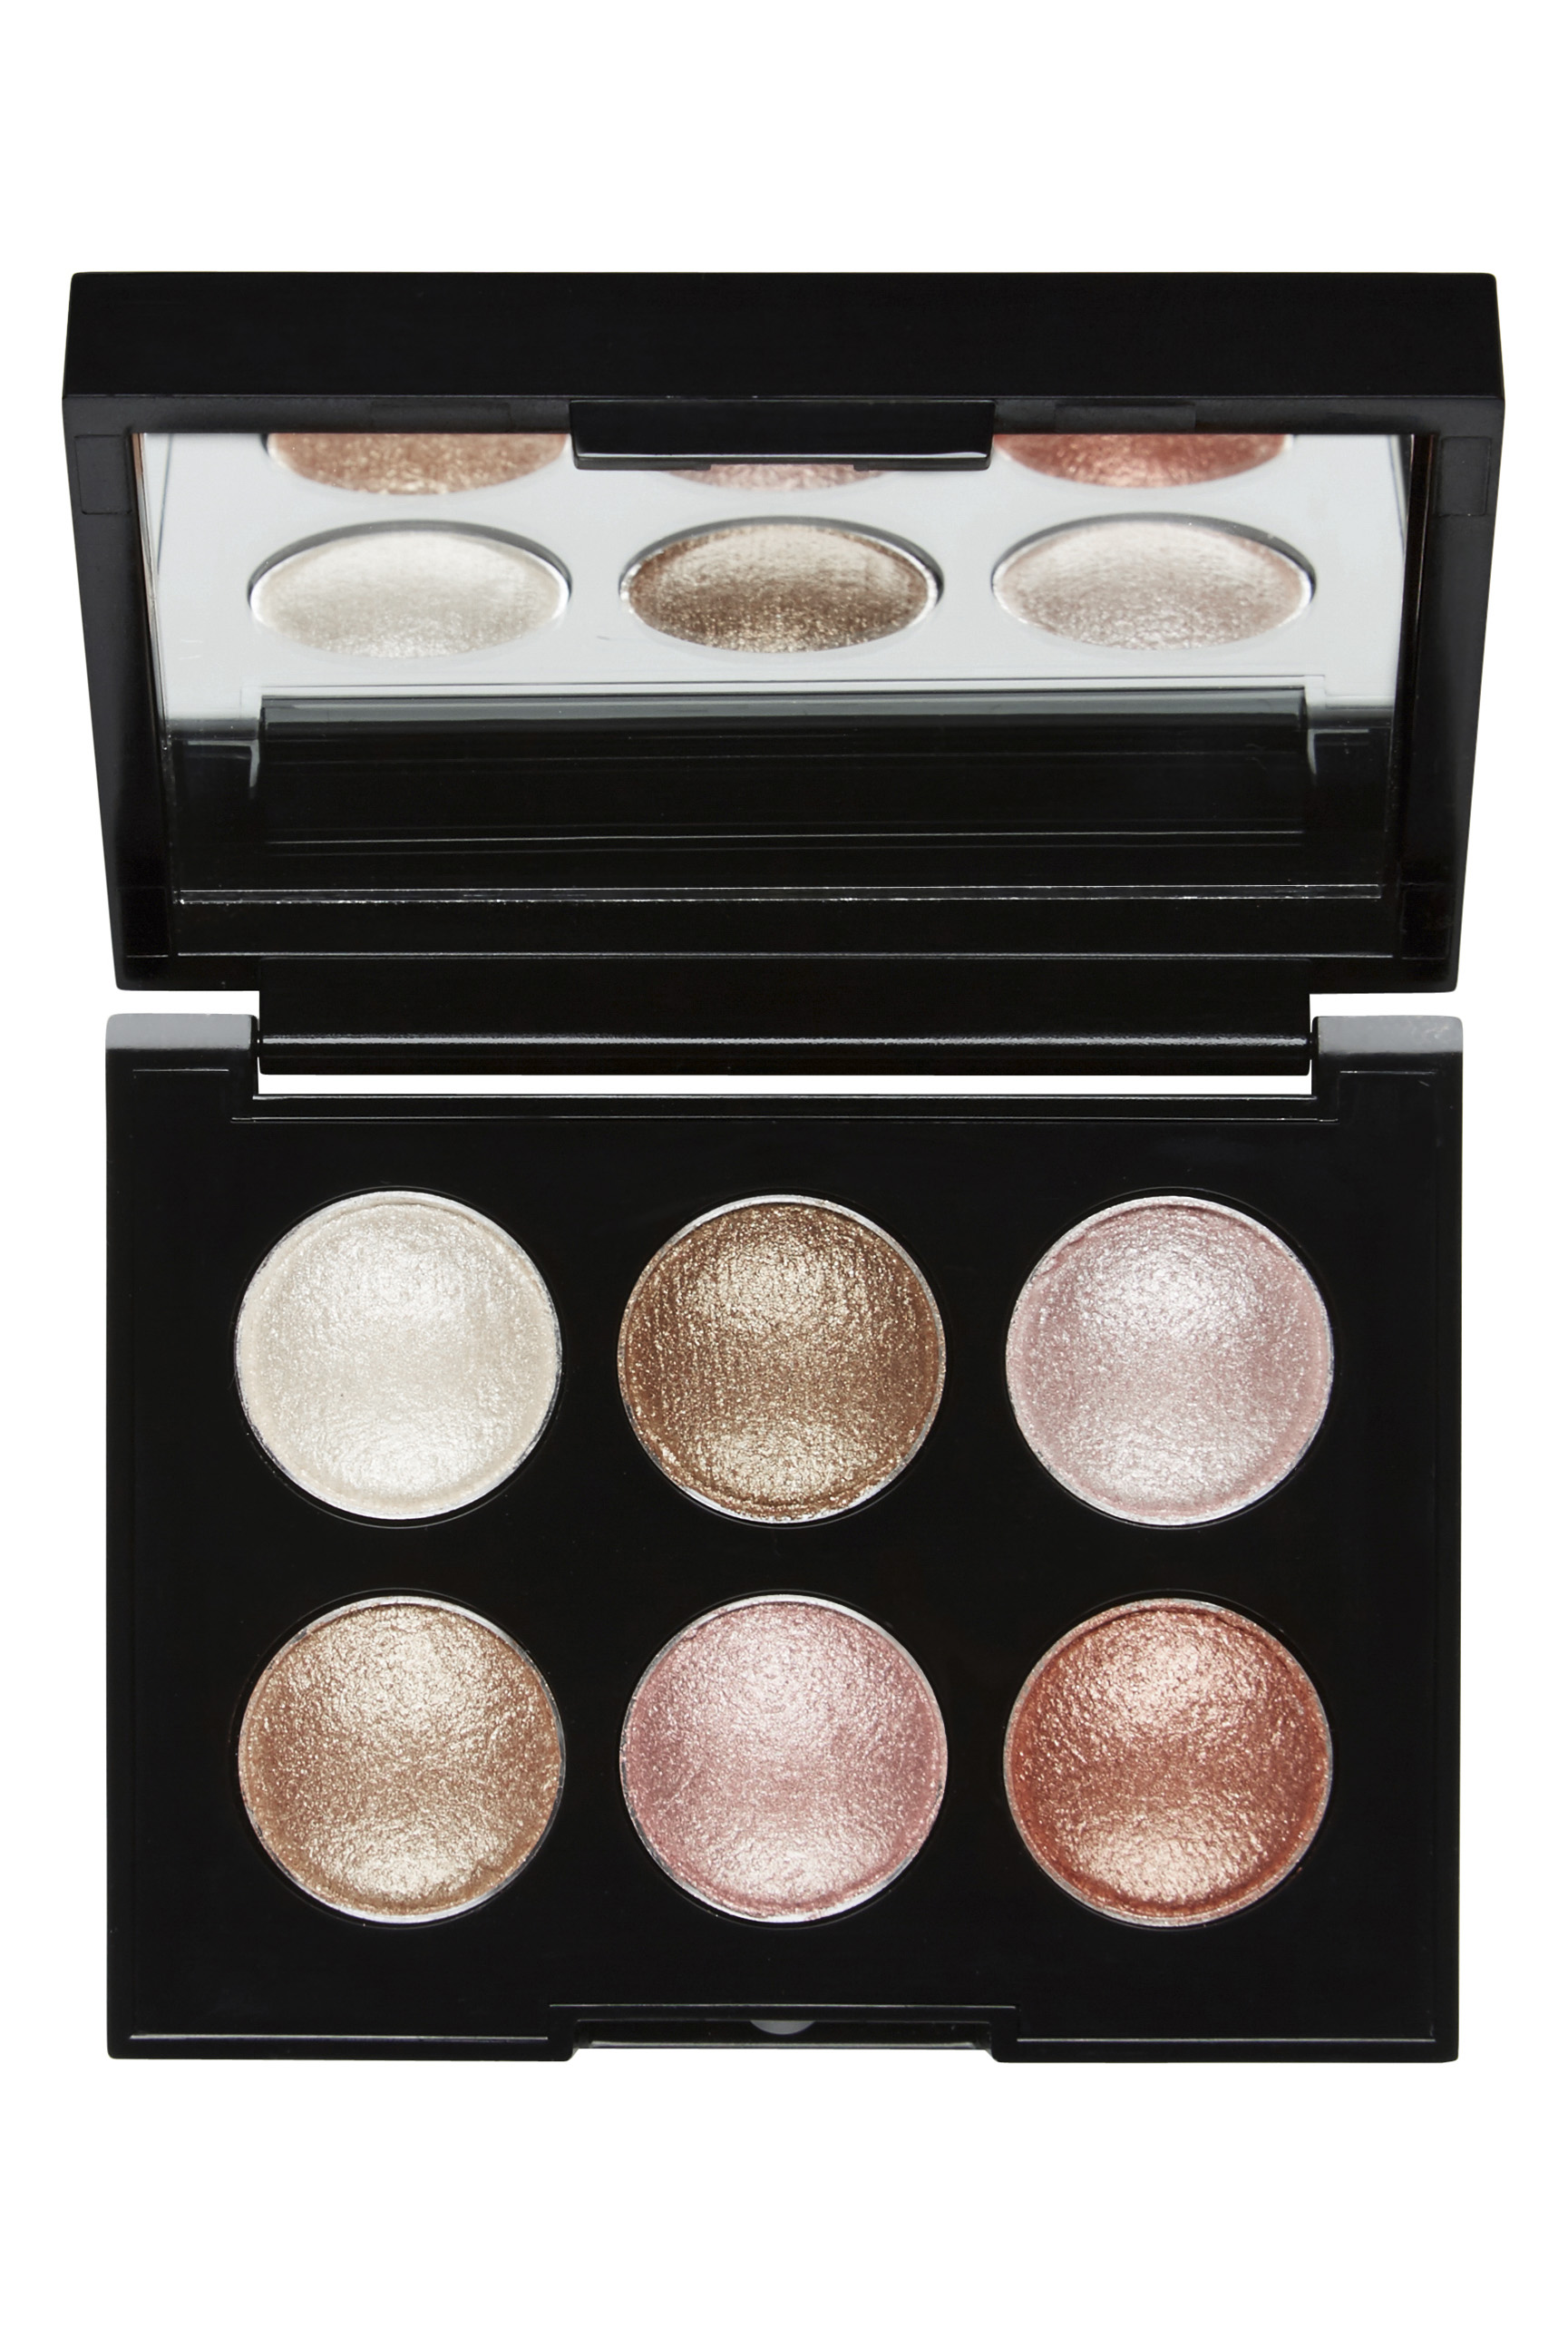 60202599_witchery-beauty-baked-eyeshadow-palette-in-bronze-rrp29-90